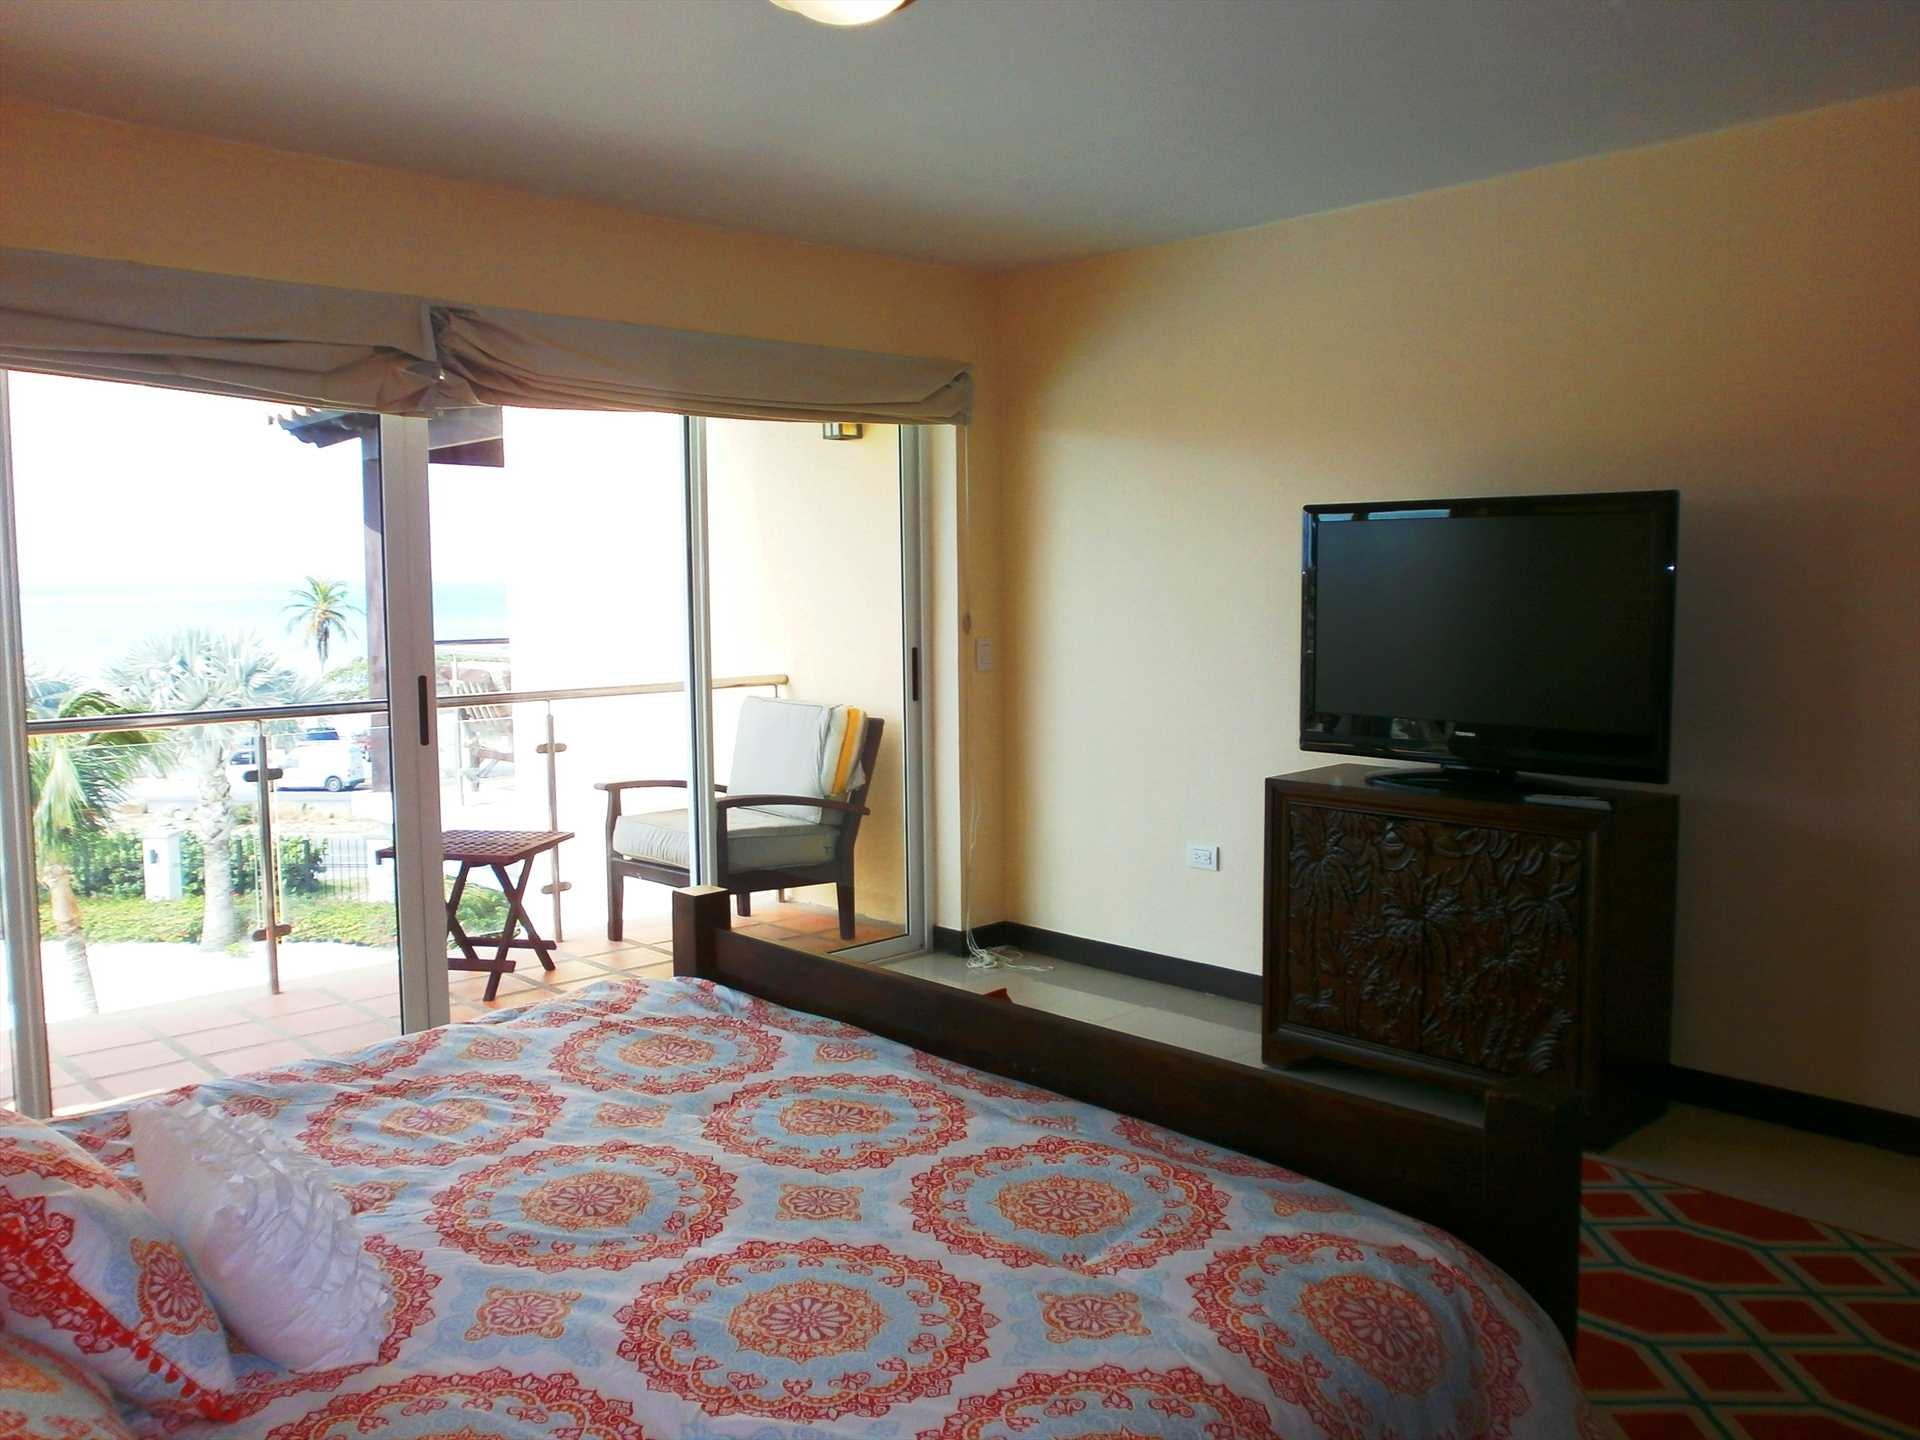 TV and balcony in master bedroom.